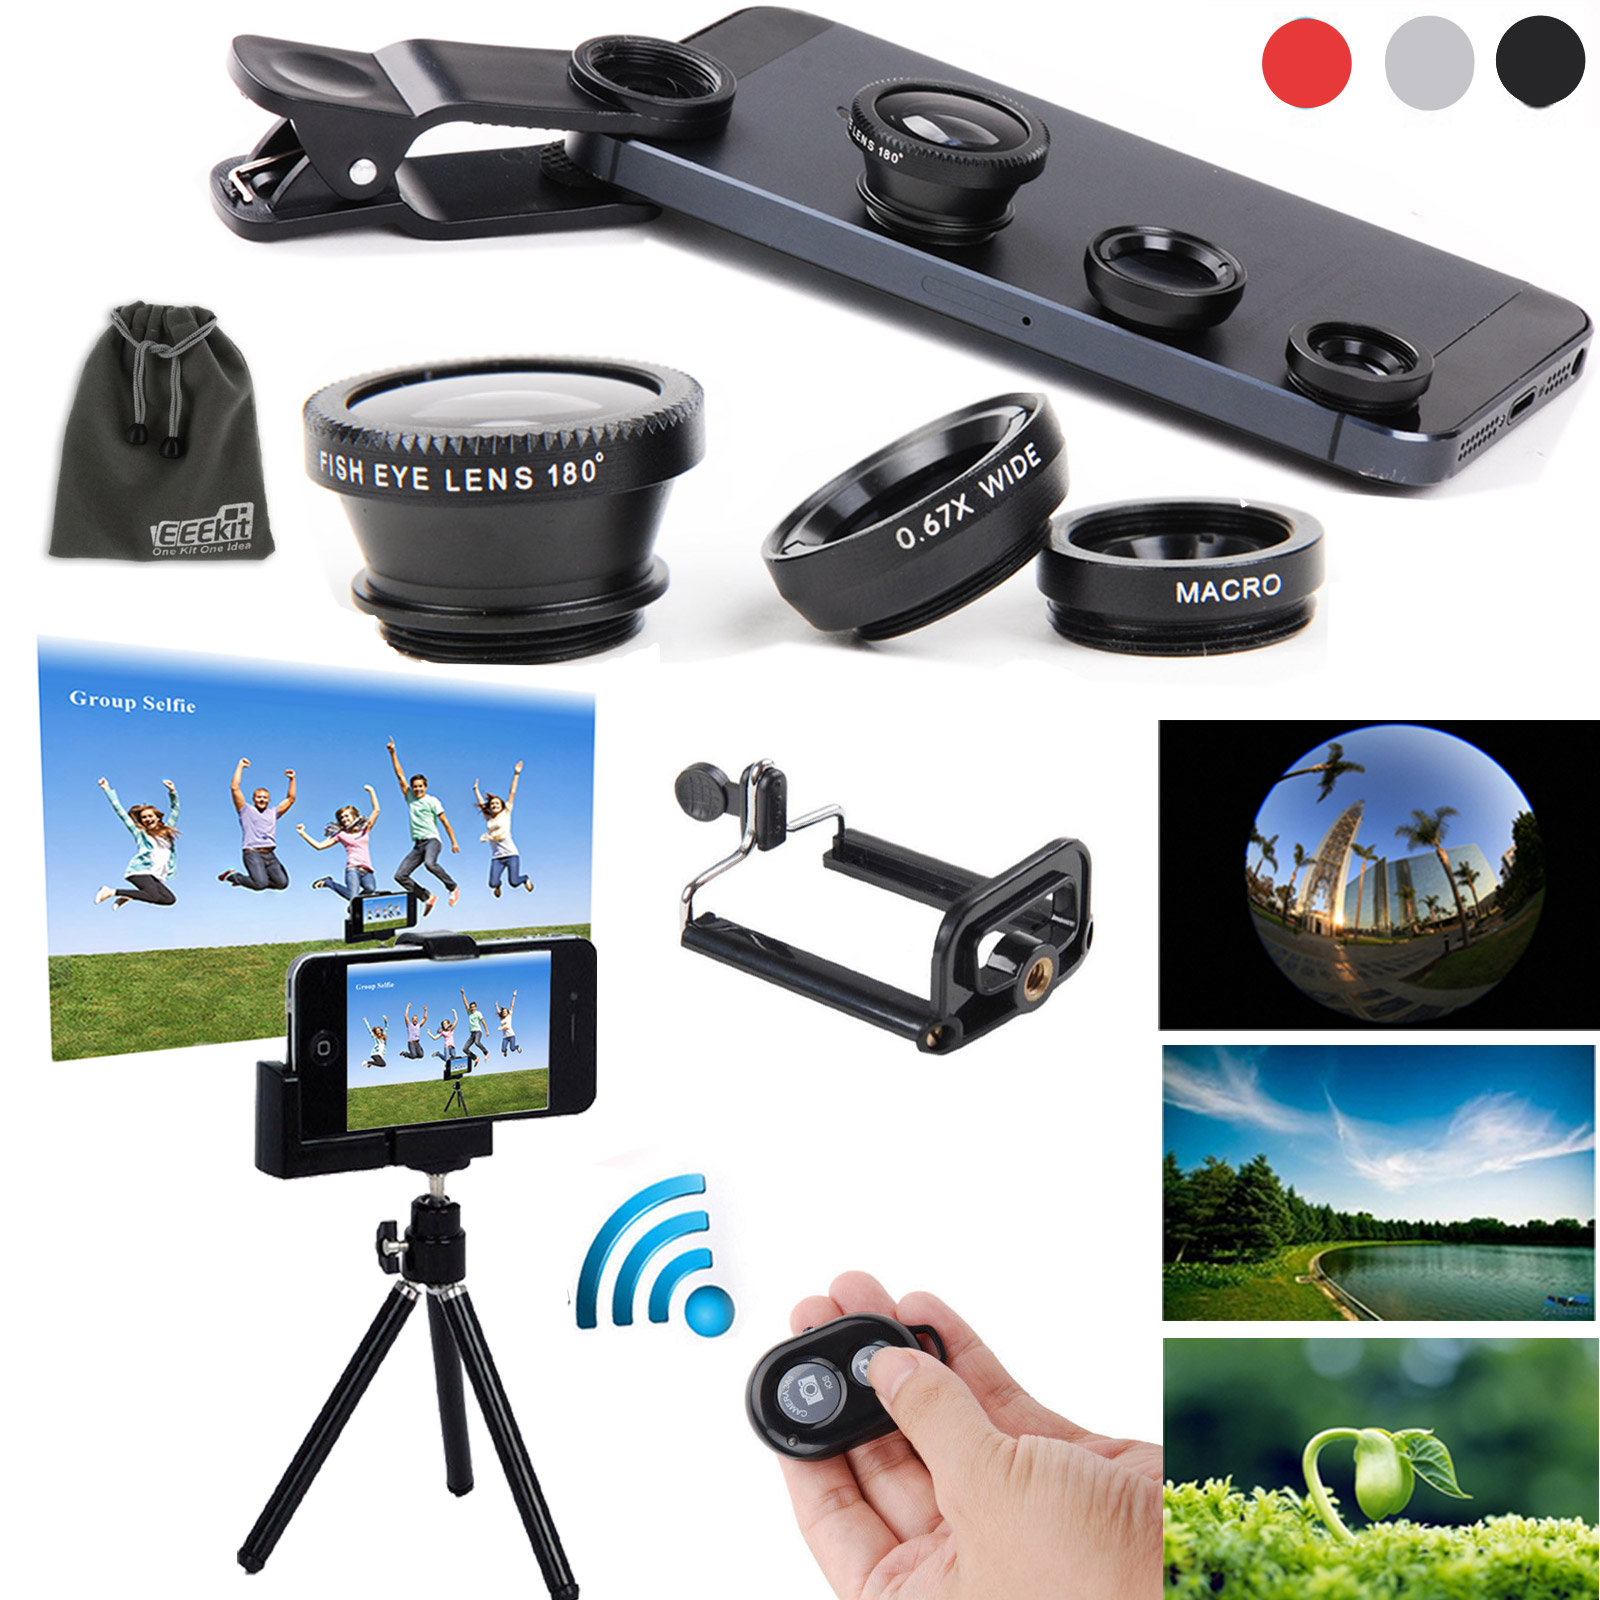 EEEKit 5in1 Kit for Cellphone iPhone Samsung,Fisheye Wide Angle Macro Lens, Remote Shutter, Mini Tripod Stand by EEEkit